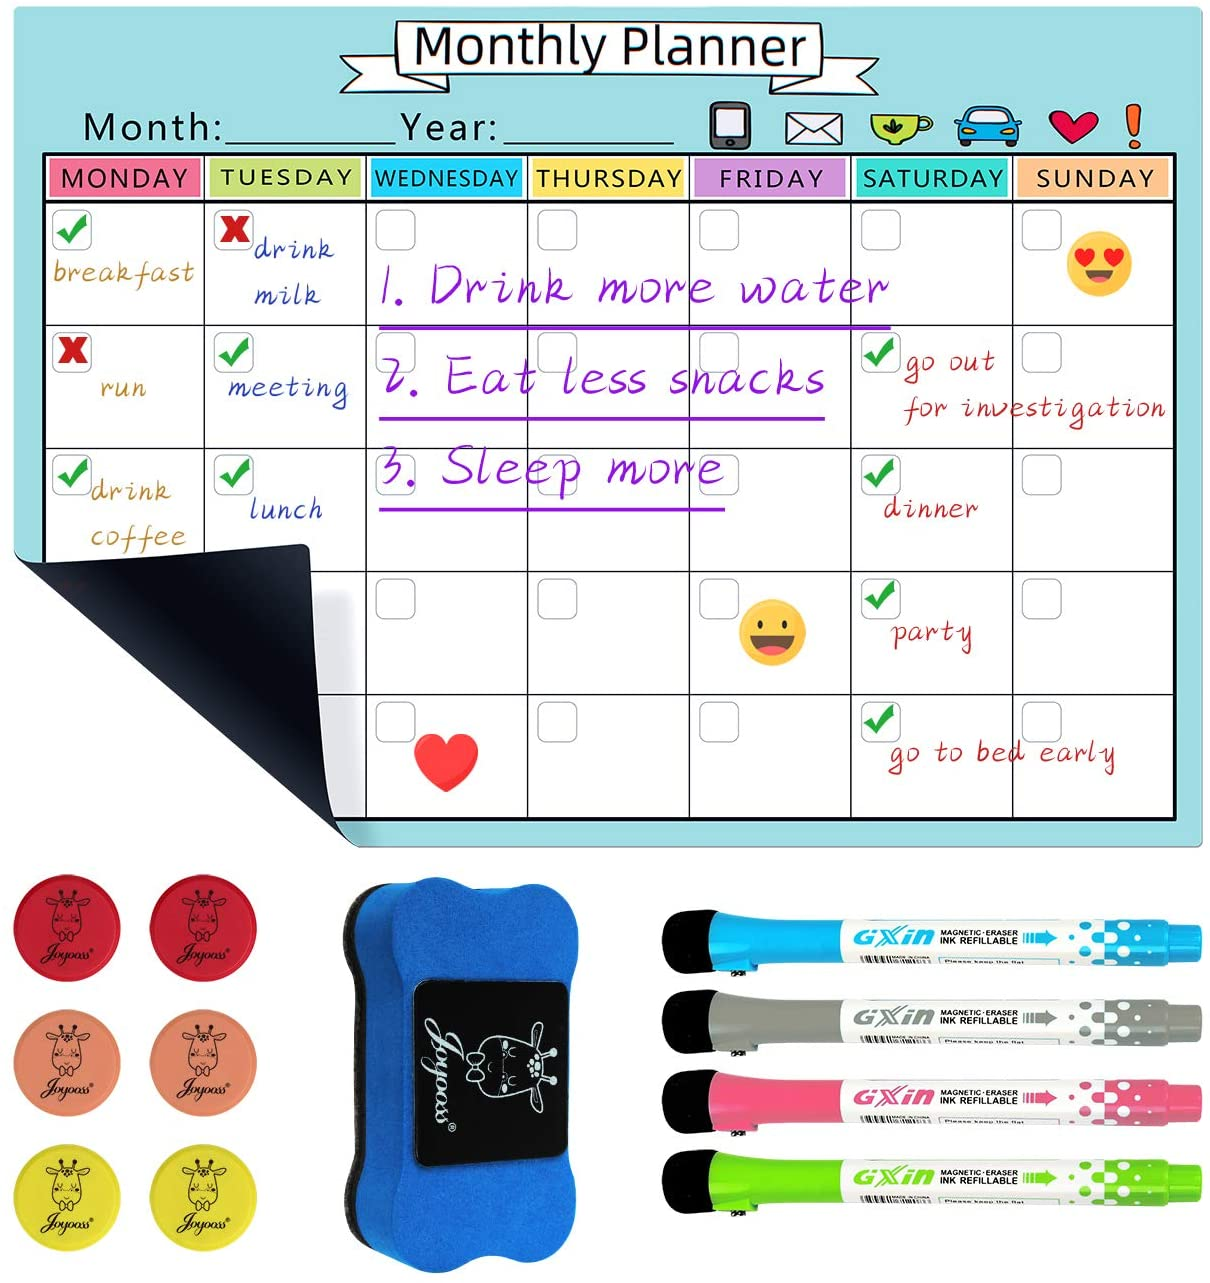 JOYOOSS Magnetic Dry Erase Calendar Whiteboard Sheet Monthly Planner 12 x 17 inch with Markers, Eraser & Magnets